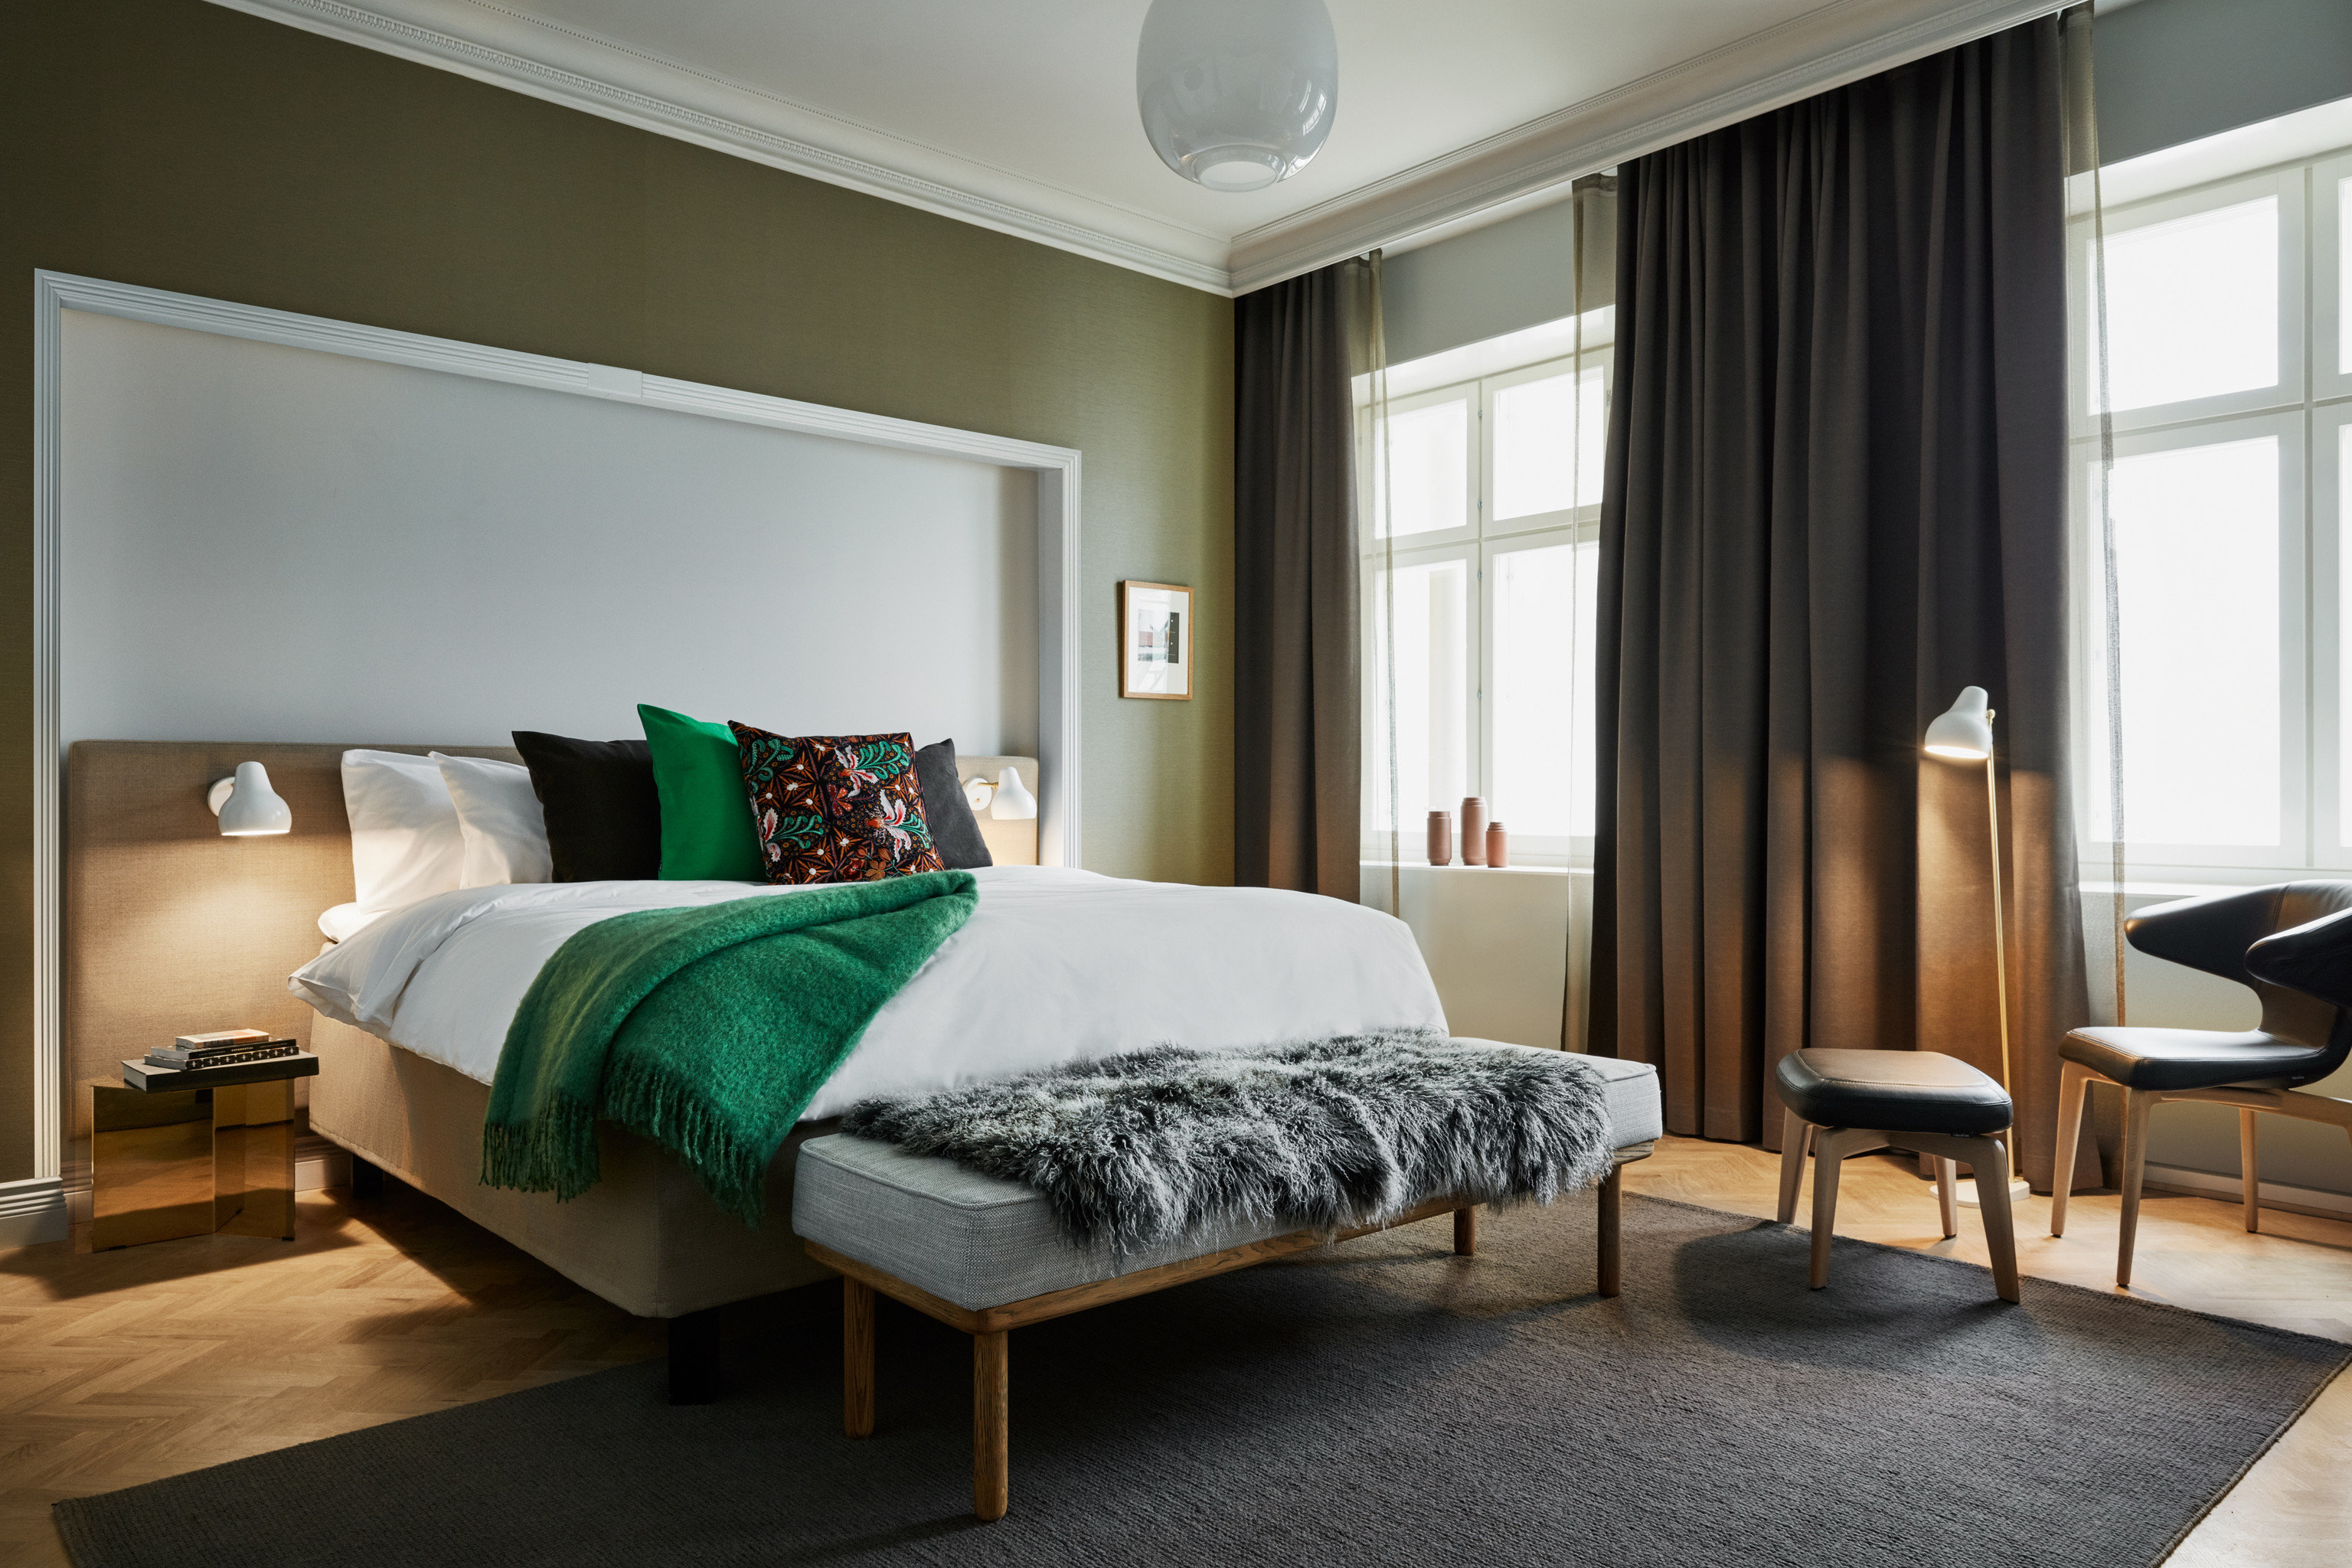 Design Hotels indoor floor wall room window hotel chair bed frame bed interior design Bedroom ceiling Suite furniture green home nice interior designer bed sheet mattress window covering area decorated